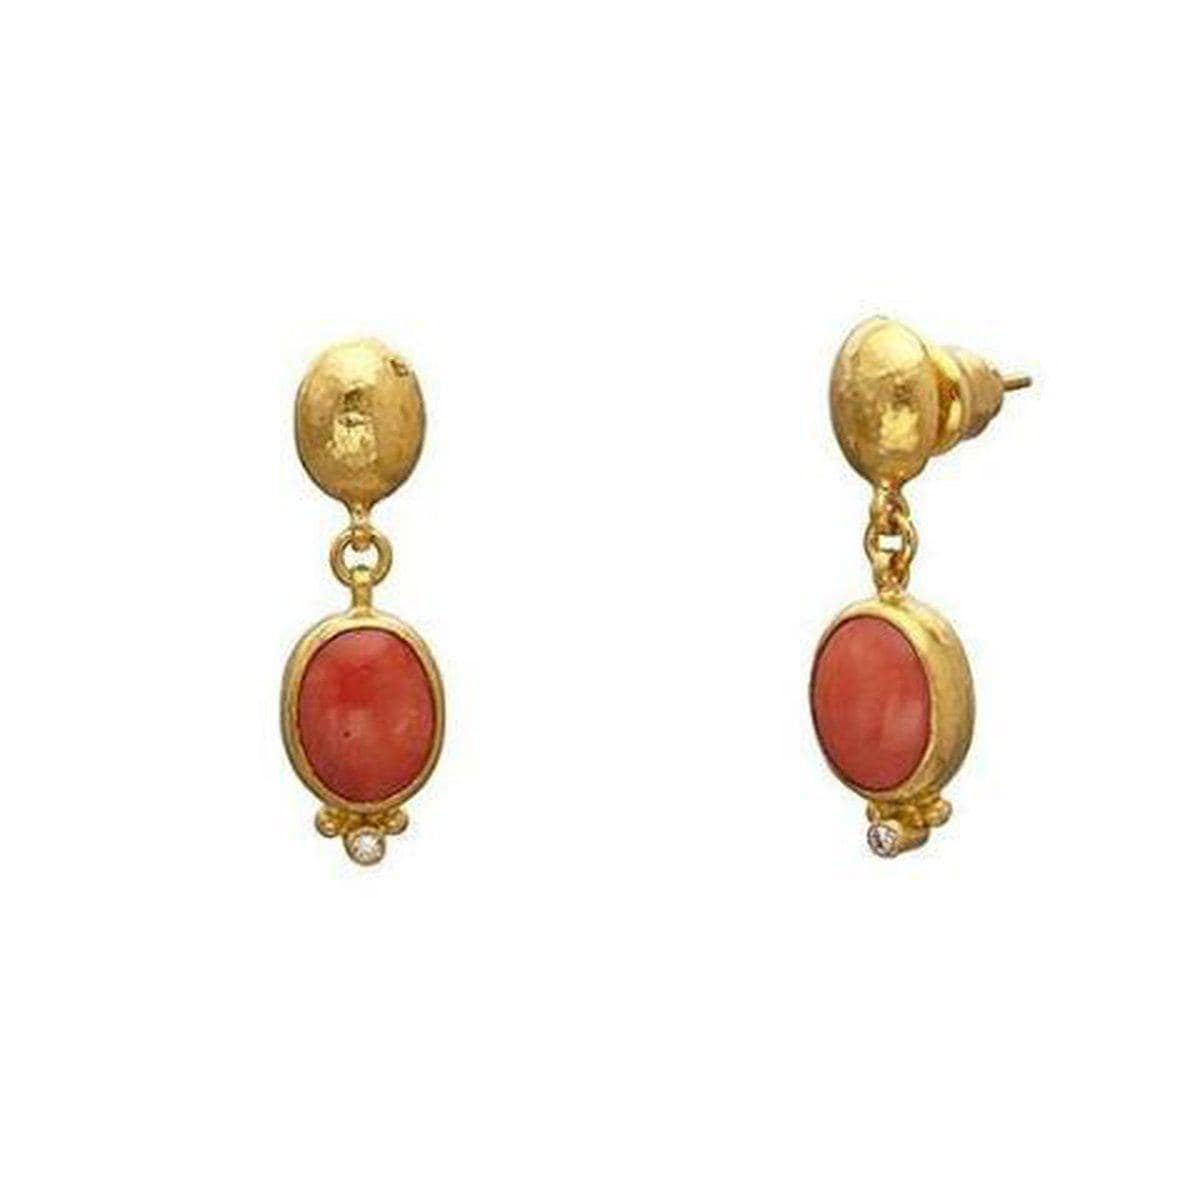 Amulet Hue 24K Gold Coral Earrings - E-U26166-CO-GURHAN-Renee Taylor Gallery